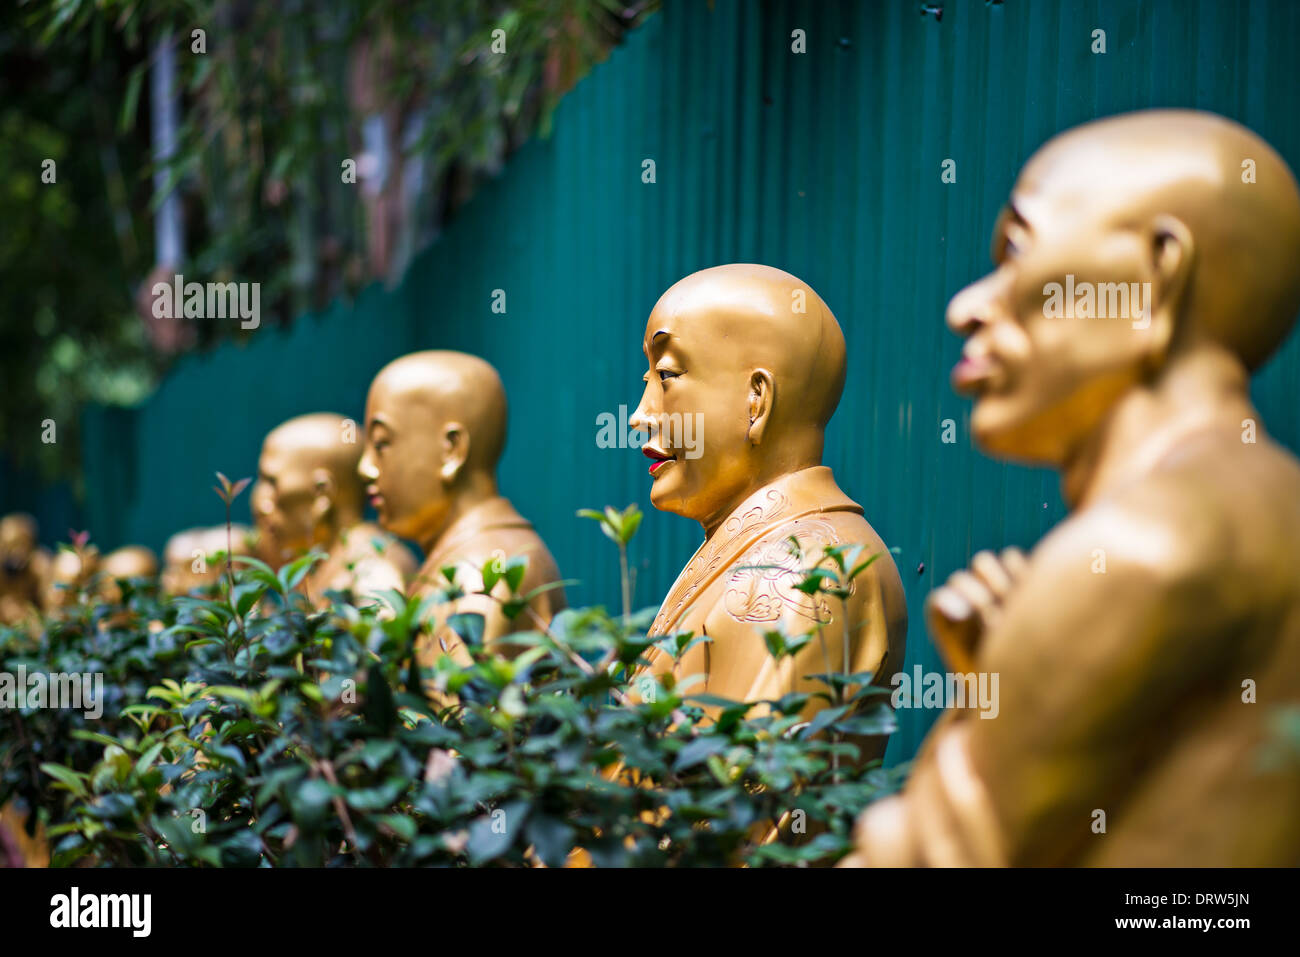 Buddha statues at Ten Thousand Buddhas Monastery in Hong Kong, China. - Stock Image